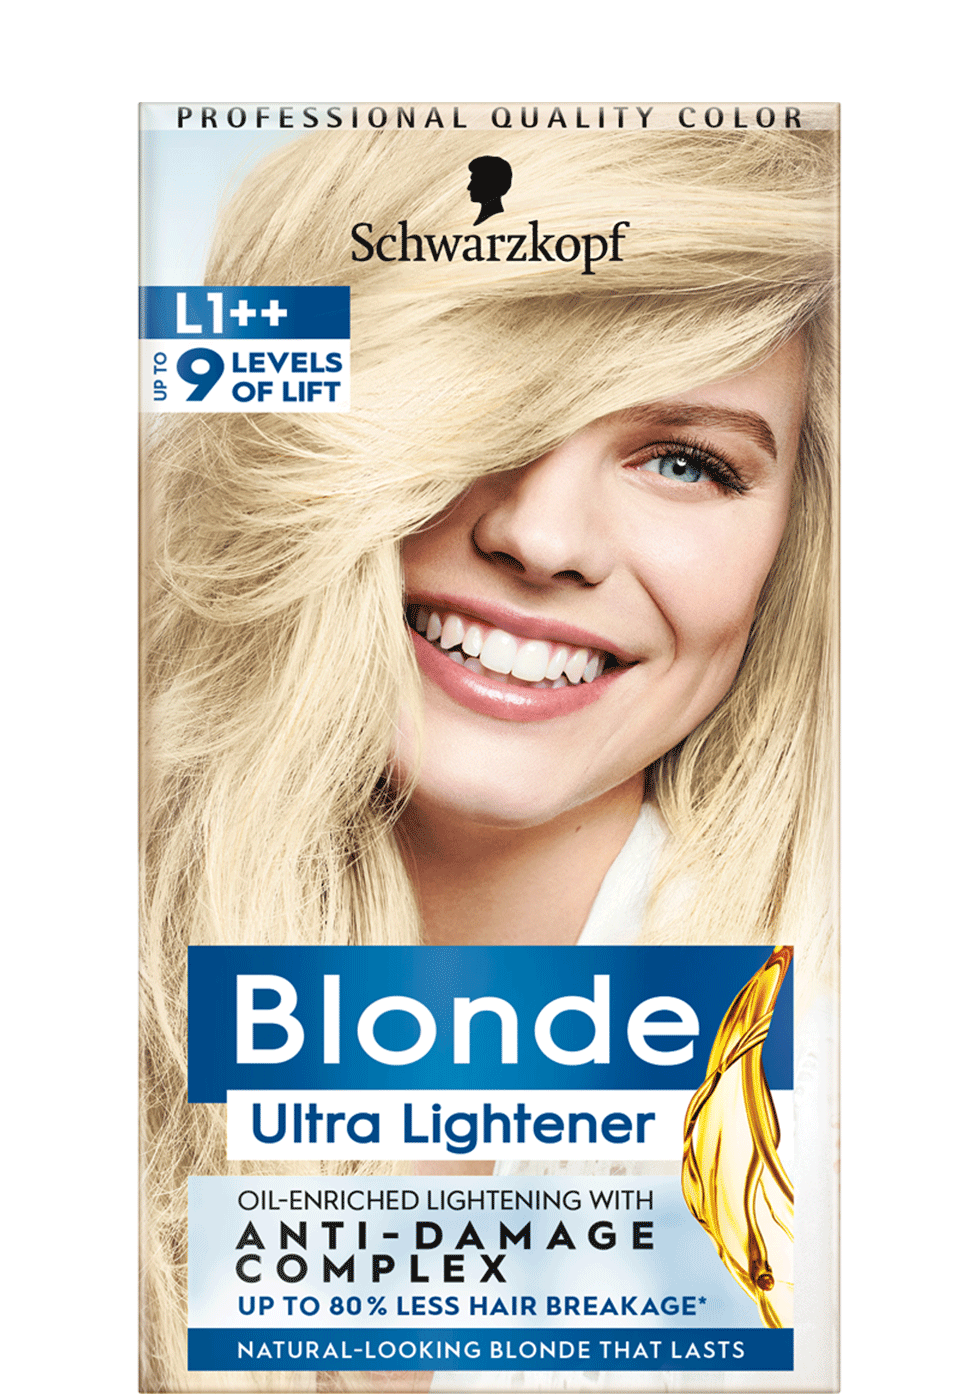 Blonde Lighteners LD Dark Hair Lightener